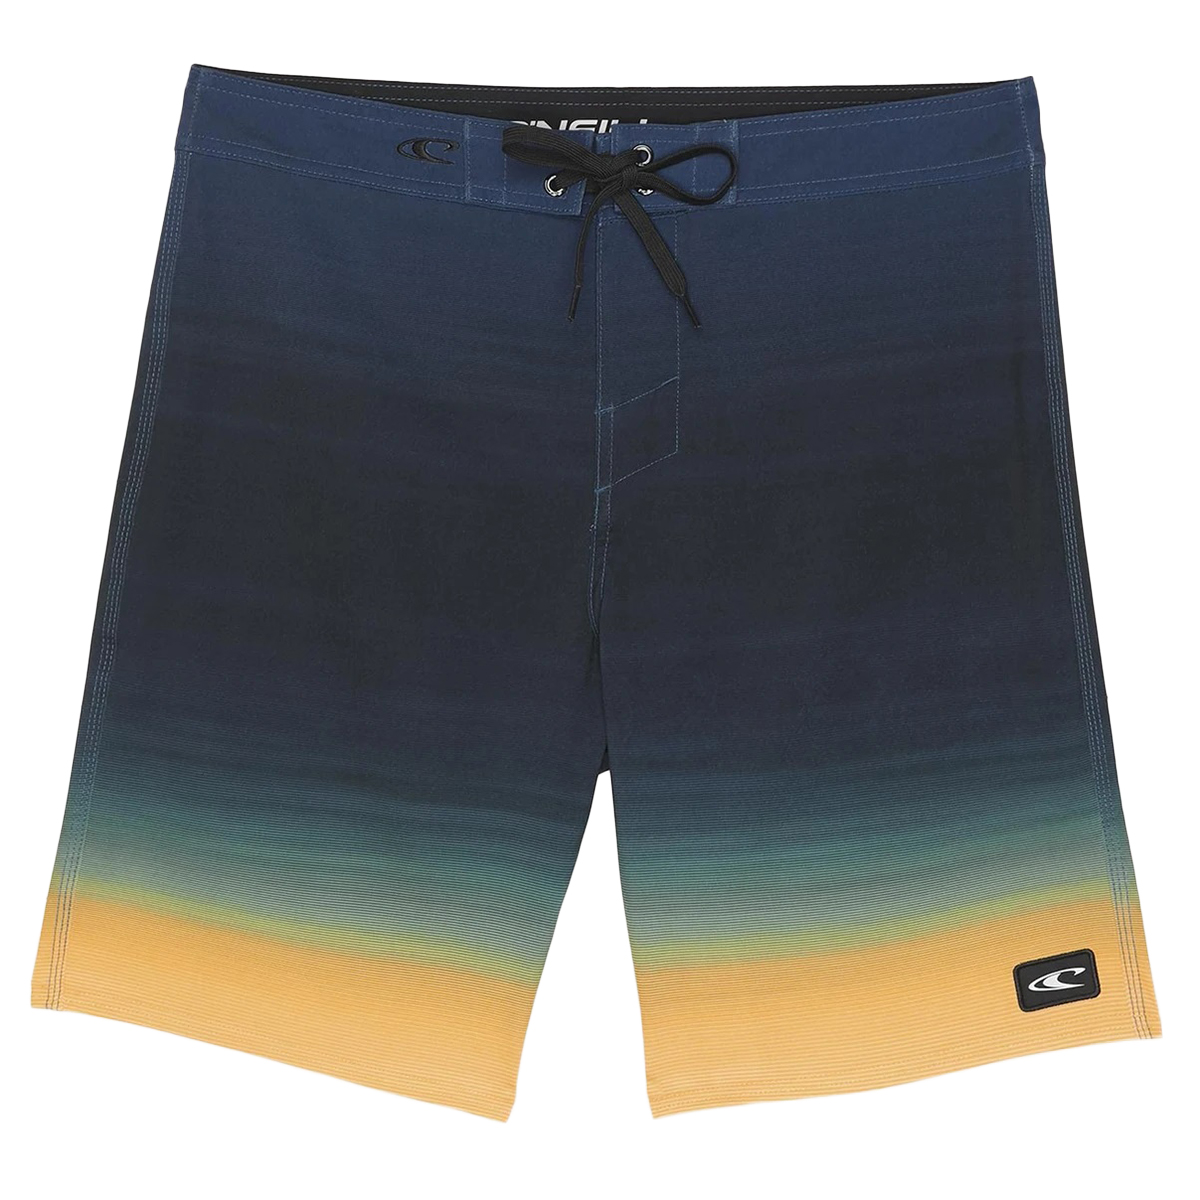 O'neill Men's Corban Boardshorts - Blue, 38